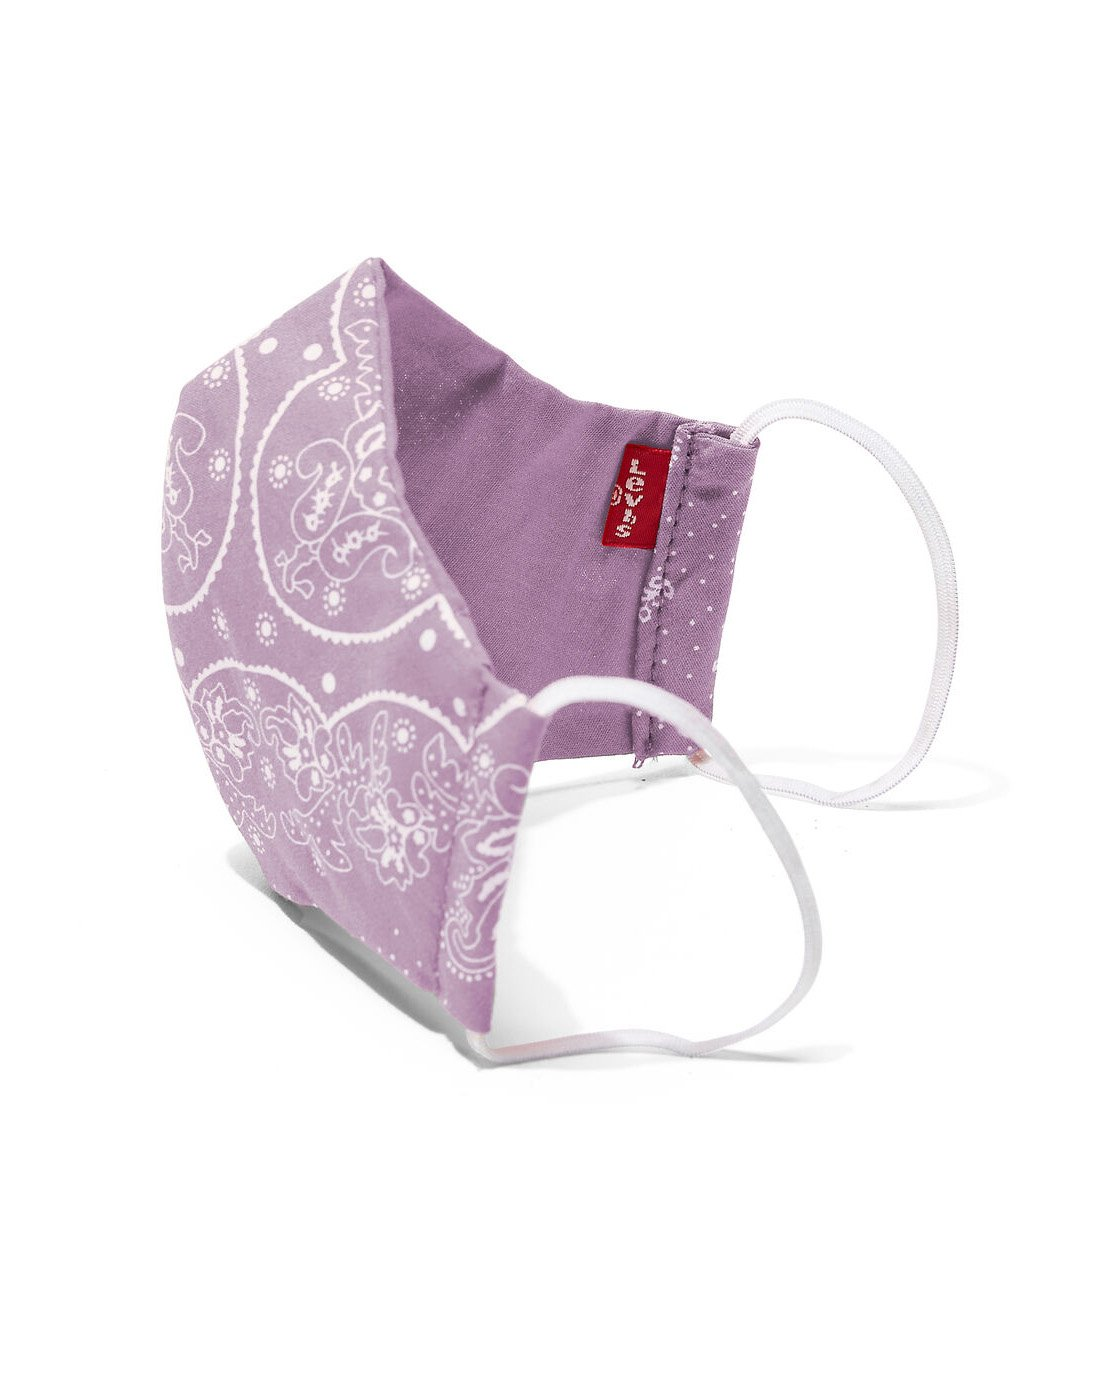 Levi's® Reusable Bandana Face Mask - Purple Small 233421-47S Levi's® Miscellaneous